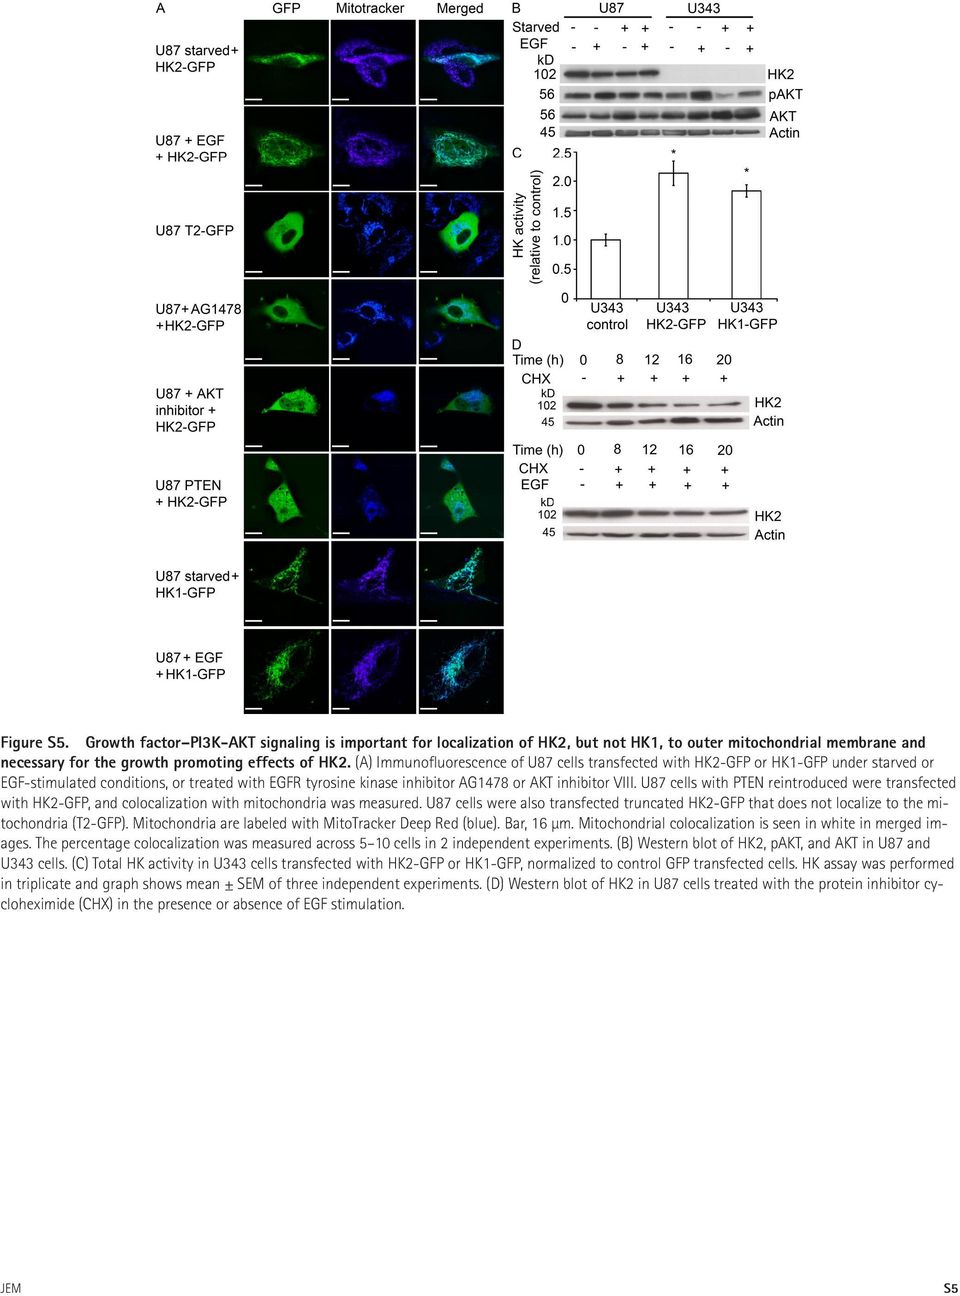 U87 cells with PTEN reintroduced were transfected with HK2-GFP, and colocalization with mitochondria was measured.